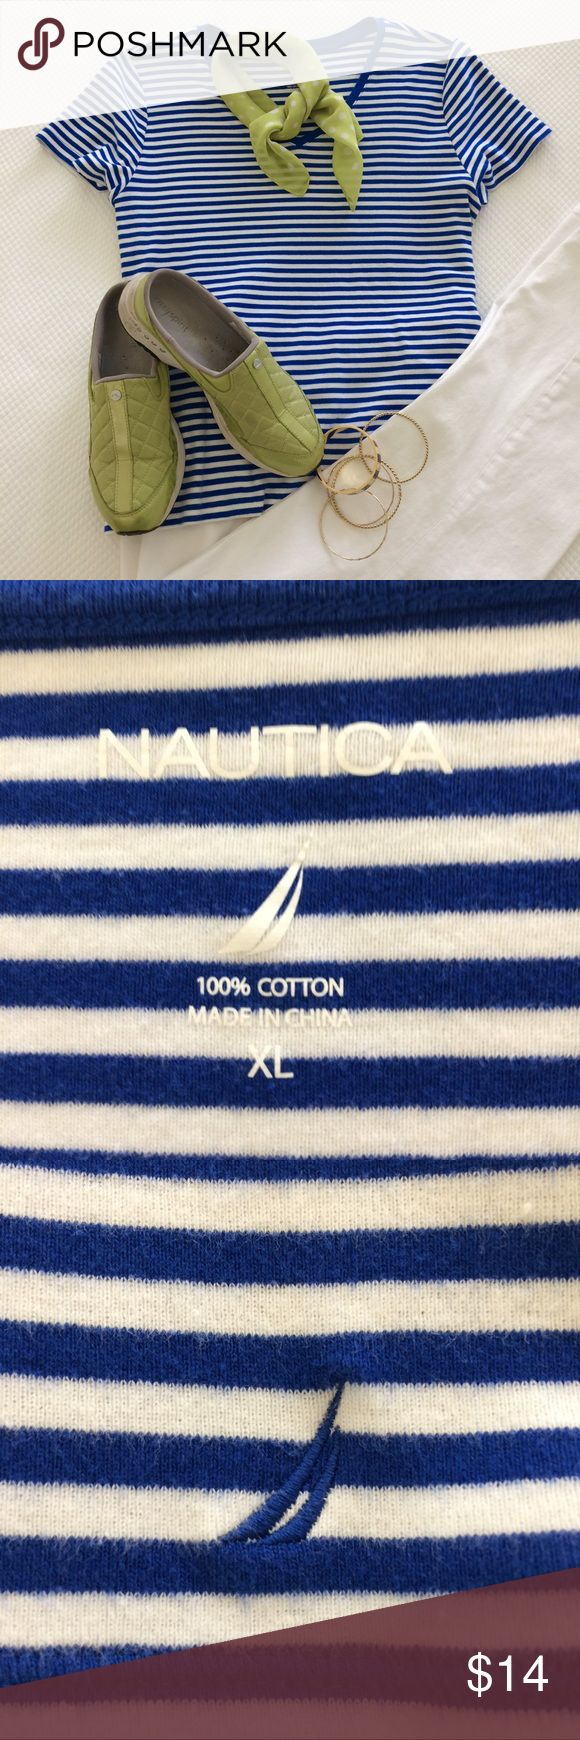 COBALT BLUE STRIPED V-neck knit top. EUC Versatile cobalt knit top with v-neck and short sleeves    A fresh look when paired with white. EXTRA FREE ADDITION. cute polka dot chiffon square neck scarf that can also be tied onto your purse. NAUTICA Tops Tees - Short Sleeve #Lookmarinero